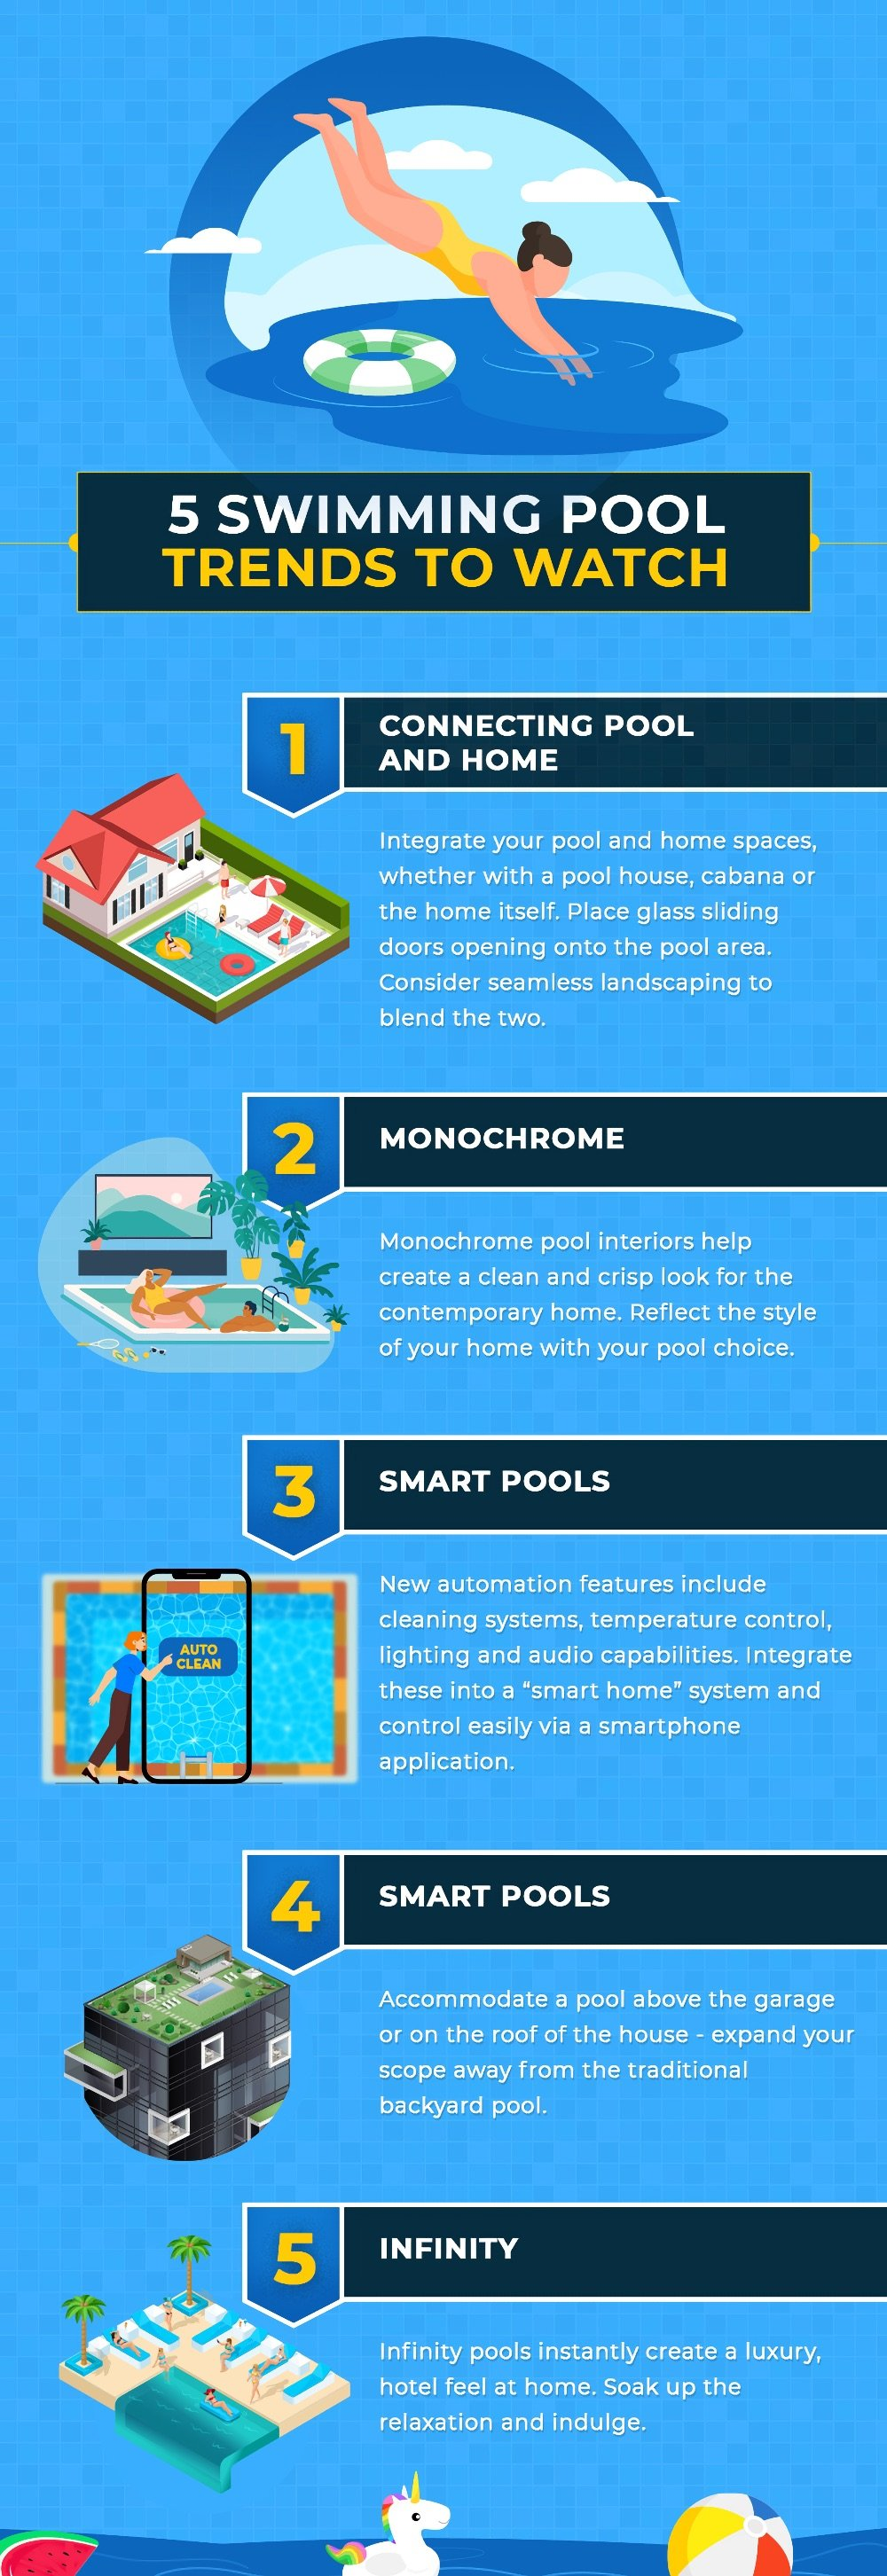 5 Swimming Pool Trends to Watch